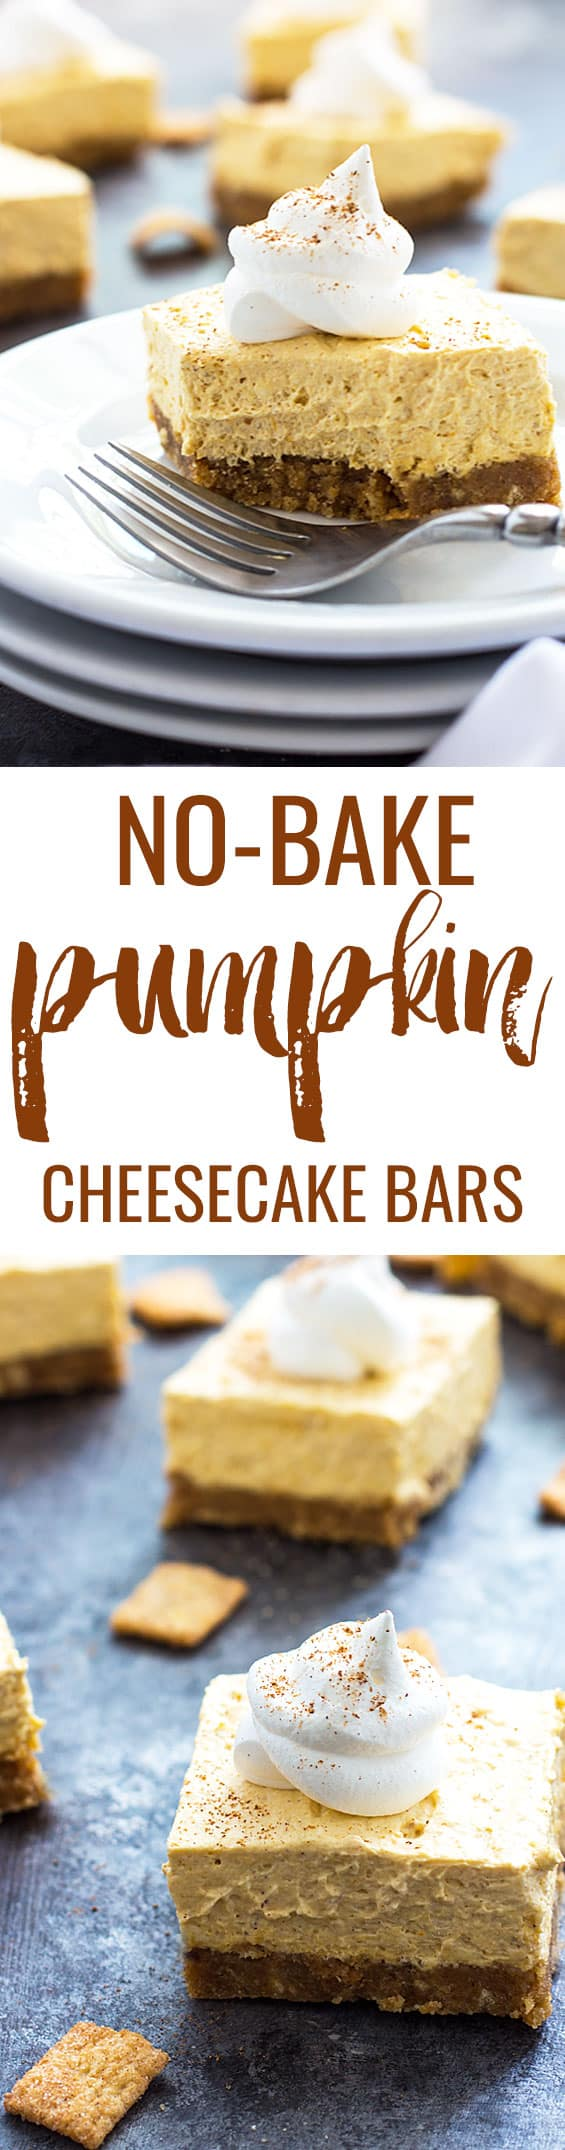 No-Bake Pumpkin Cheesecake Bars | theblondcook.com